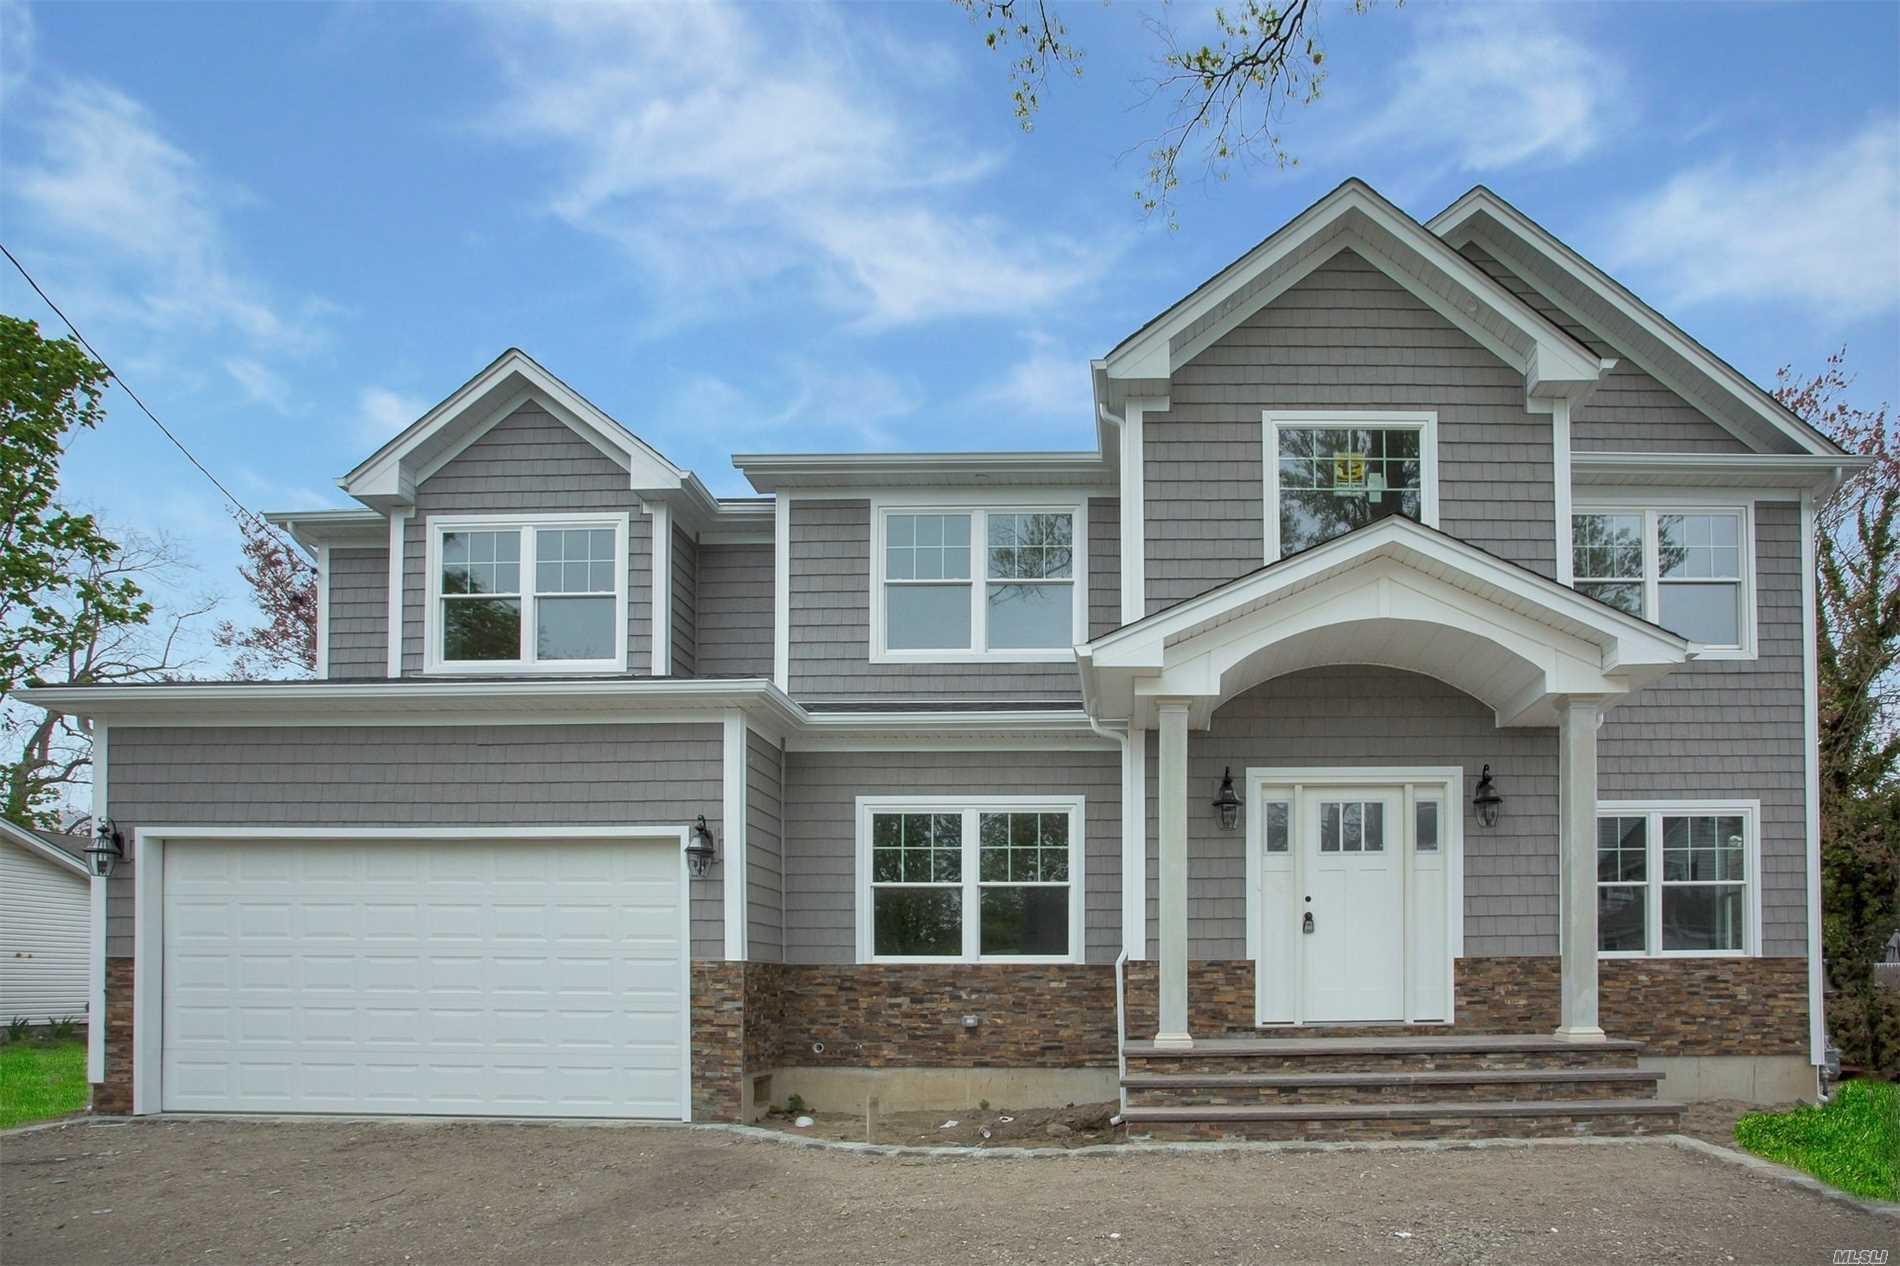 Priced To Sell! Ask About The Great Incentives Offered If In Contract By Sept. 30! Stunning New Construction Home! Mid-Blk Center Hall Colonial W/5 Bdrms & 3 Fbths! Open Flow Flr Plan W/Dbl Hgt Foyer Leading To Lvrm, Den W/Fpl, Fdrm & Gourmet Eik W/Gas & Granite Island, Bdrm & Fbth. Magnificent Master Ste W/Lux Fbth & Lg Closet &3 Bdrms &Fbth. Exquisite Finishes & Superior Craftsmanship! X Zone For Flood Insurance.